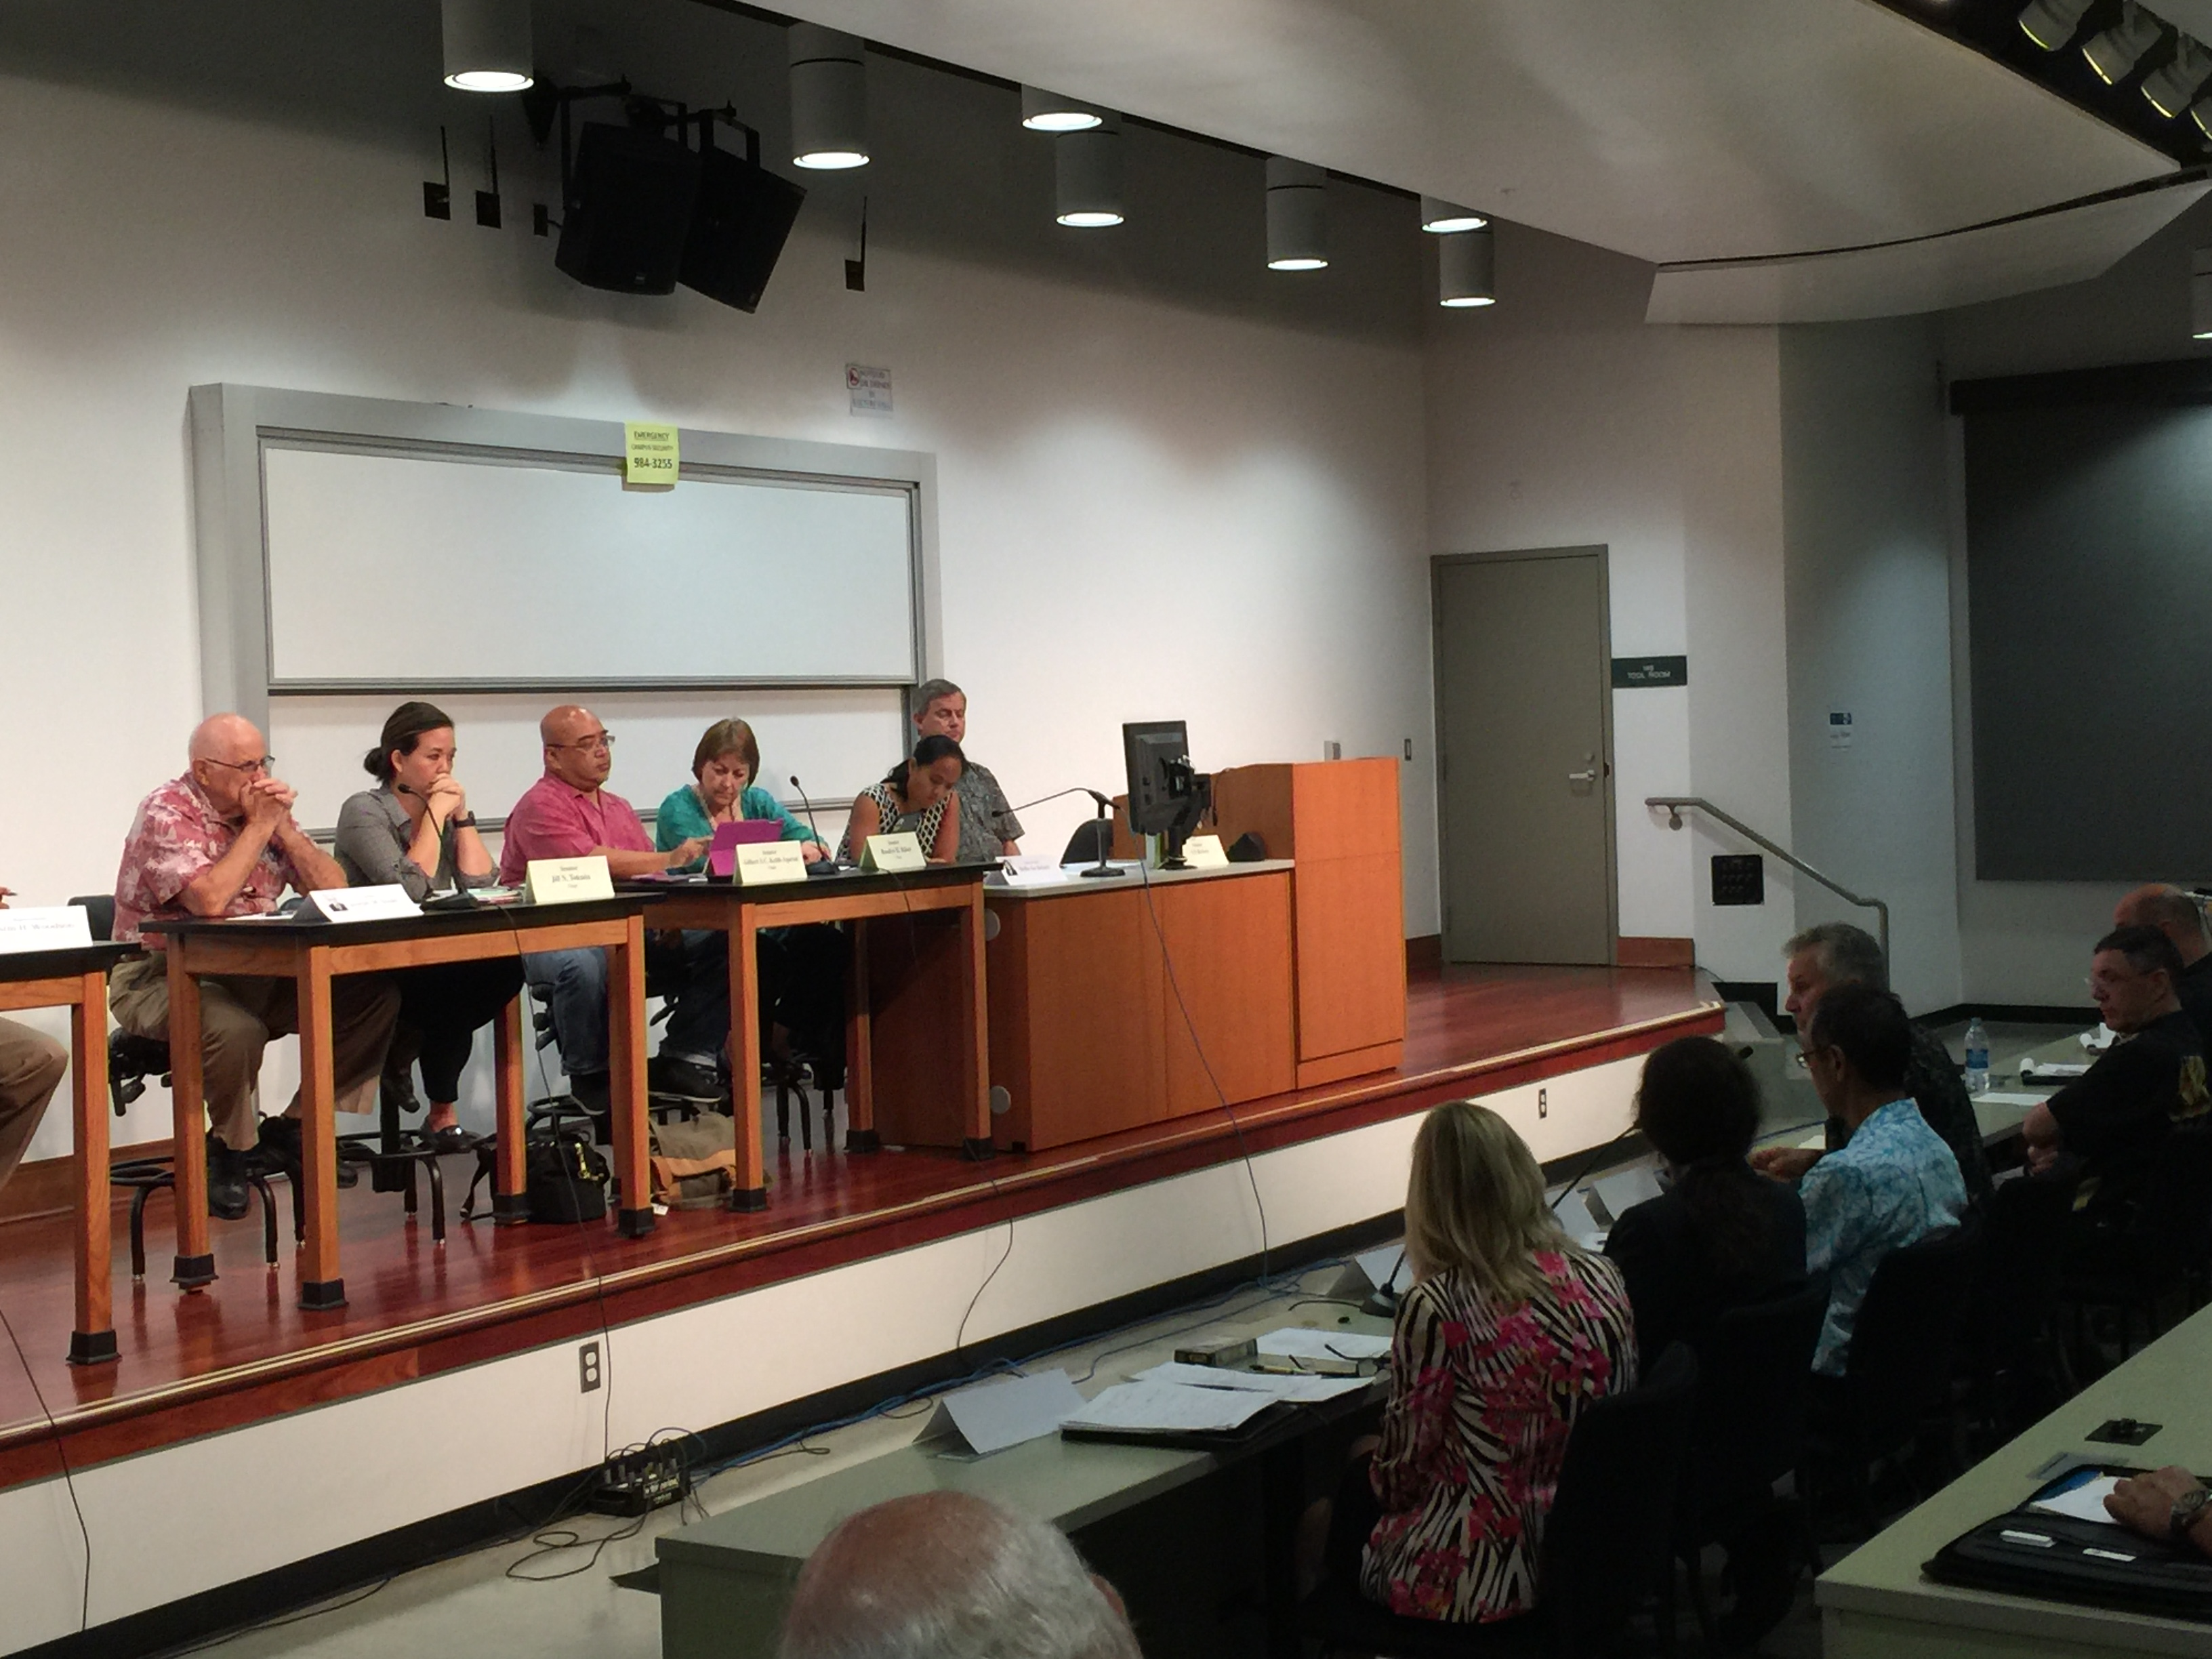 Informational briefing on the status of health care on Maui, 10.17.16. Photo credit: Kanoa Leahey.